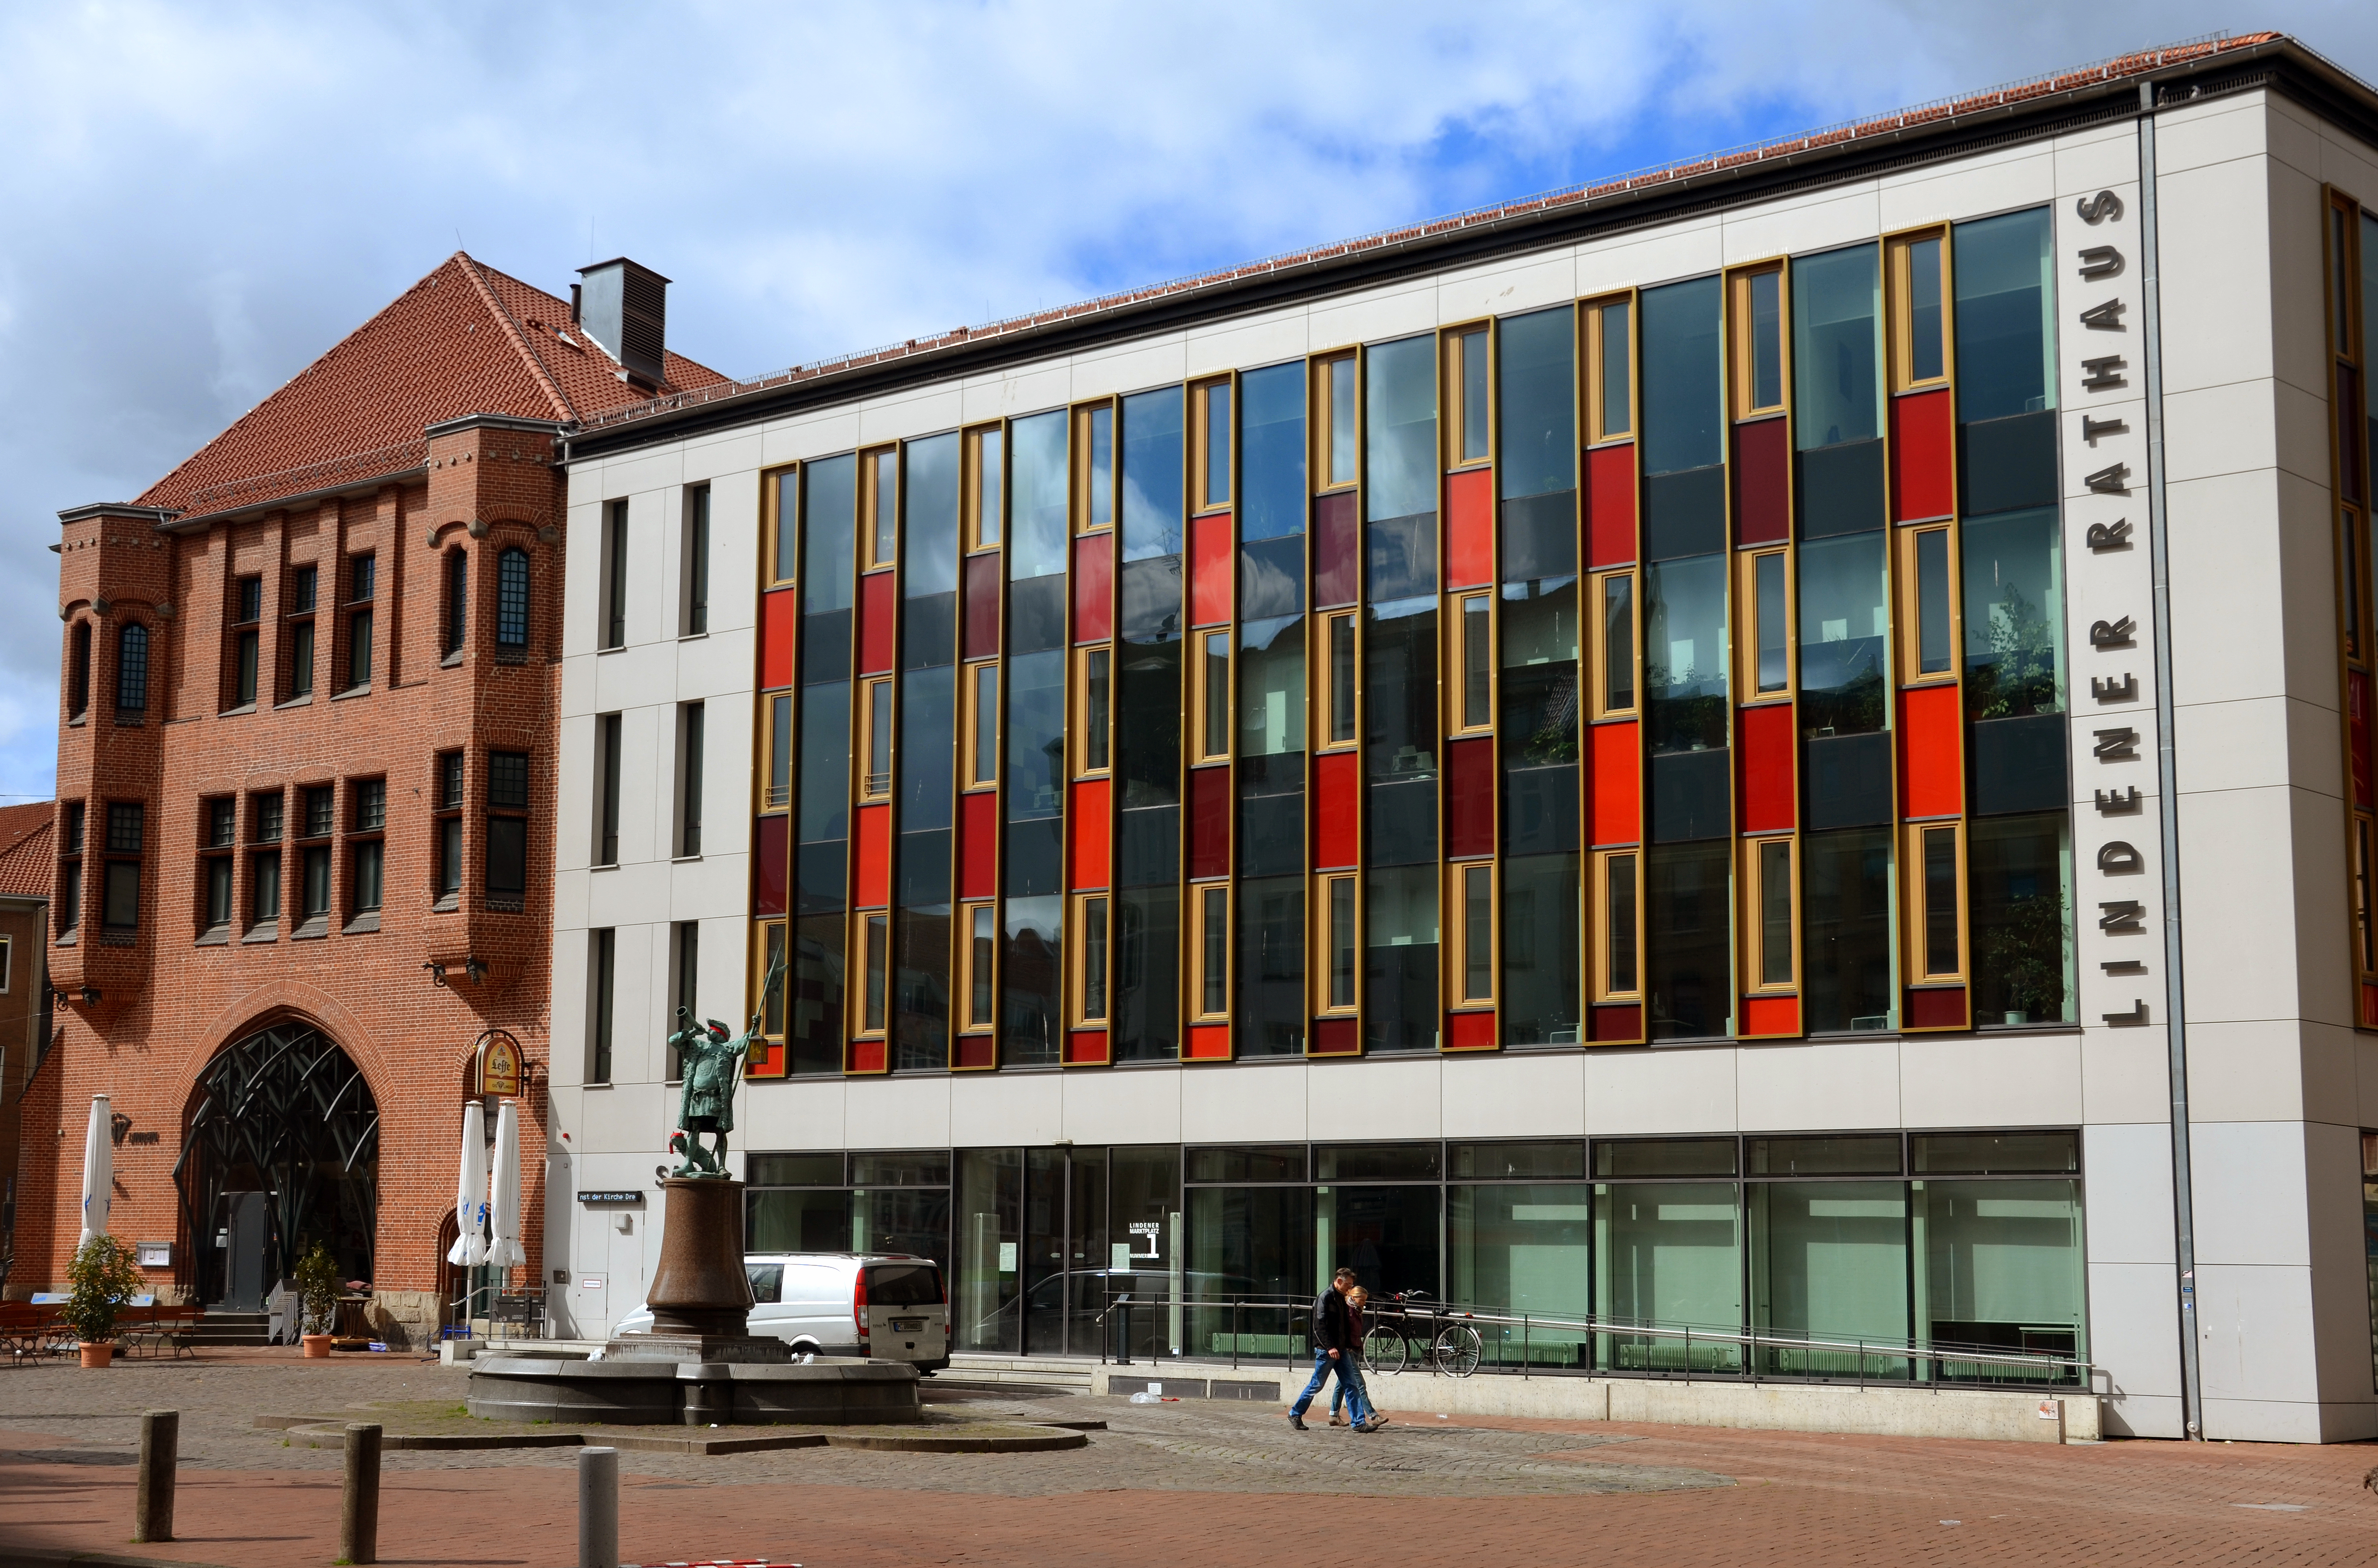 Neues Lindener Rathaus Hannover Wikiwand